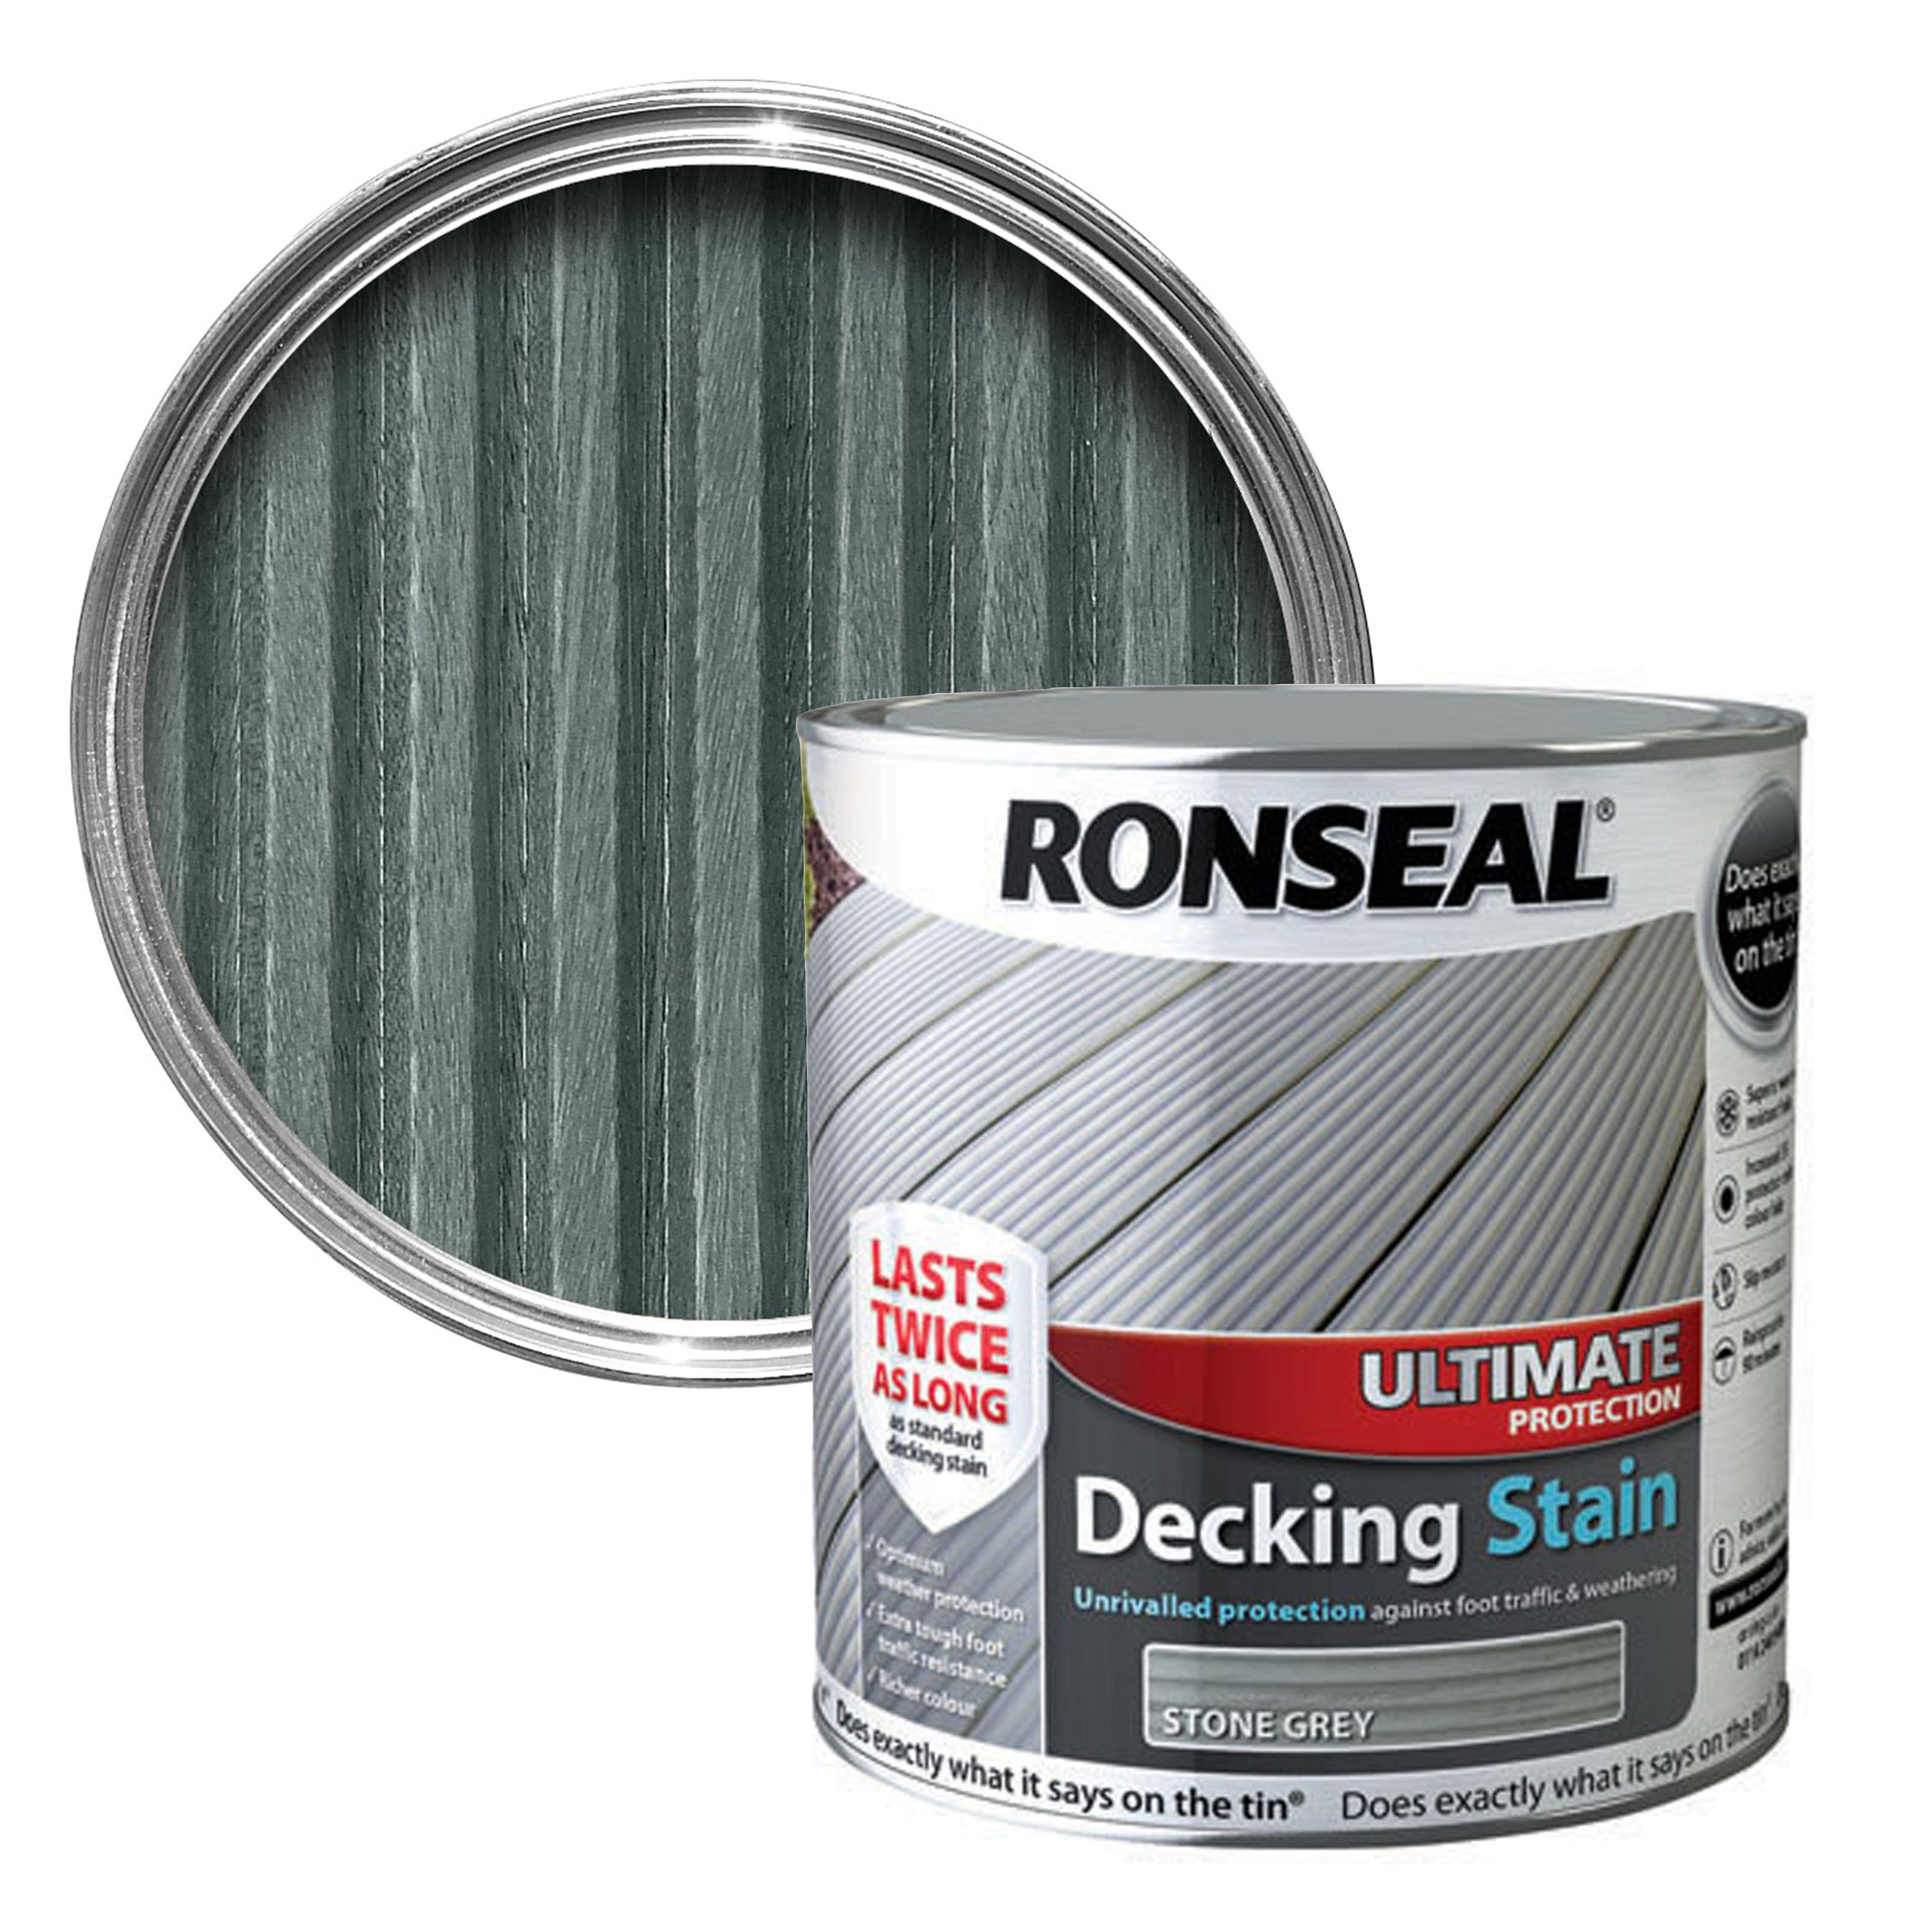 Home decor ideas bathroom - Ronseal Ultimate Stone Grey Matt Decking Stain 2 5l Departments